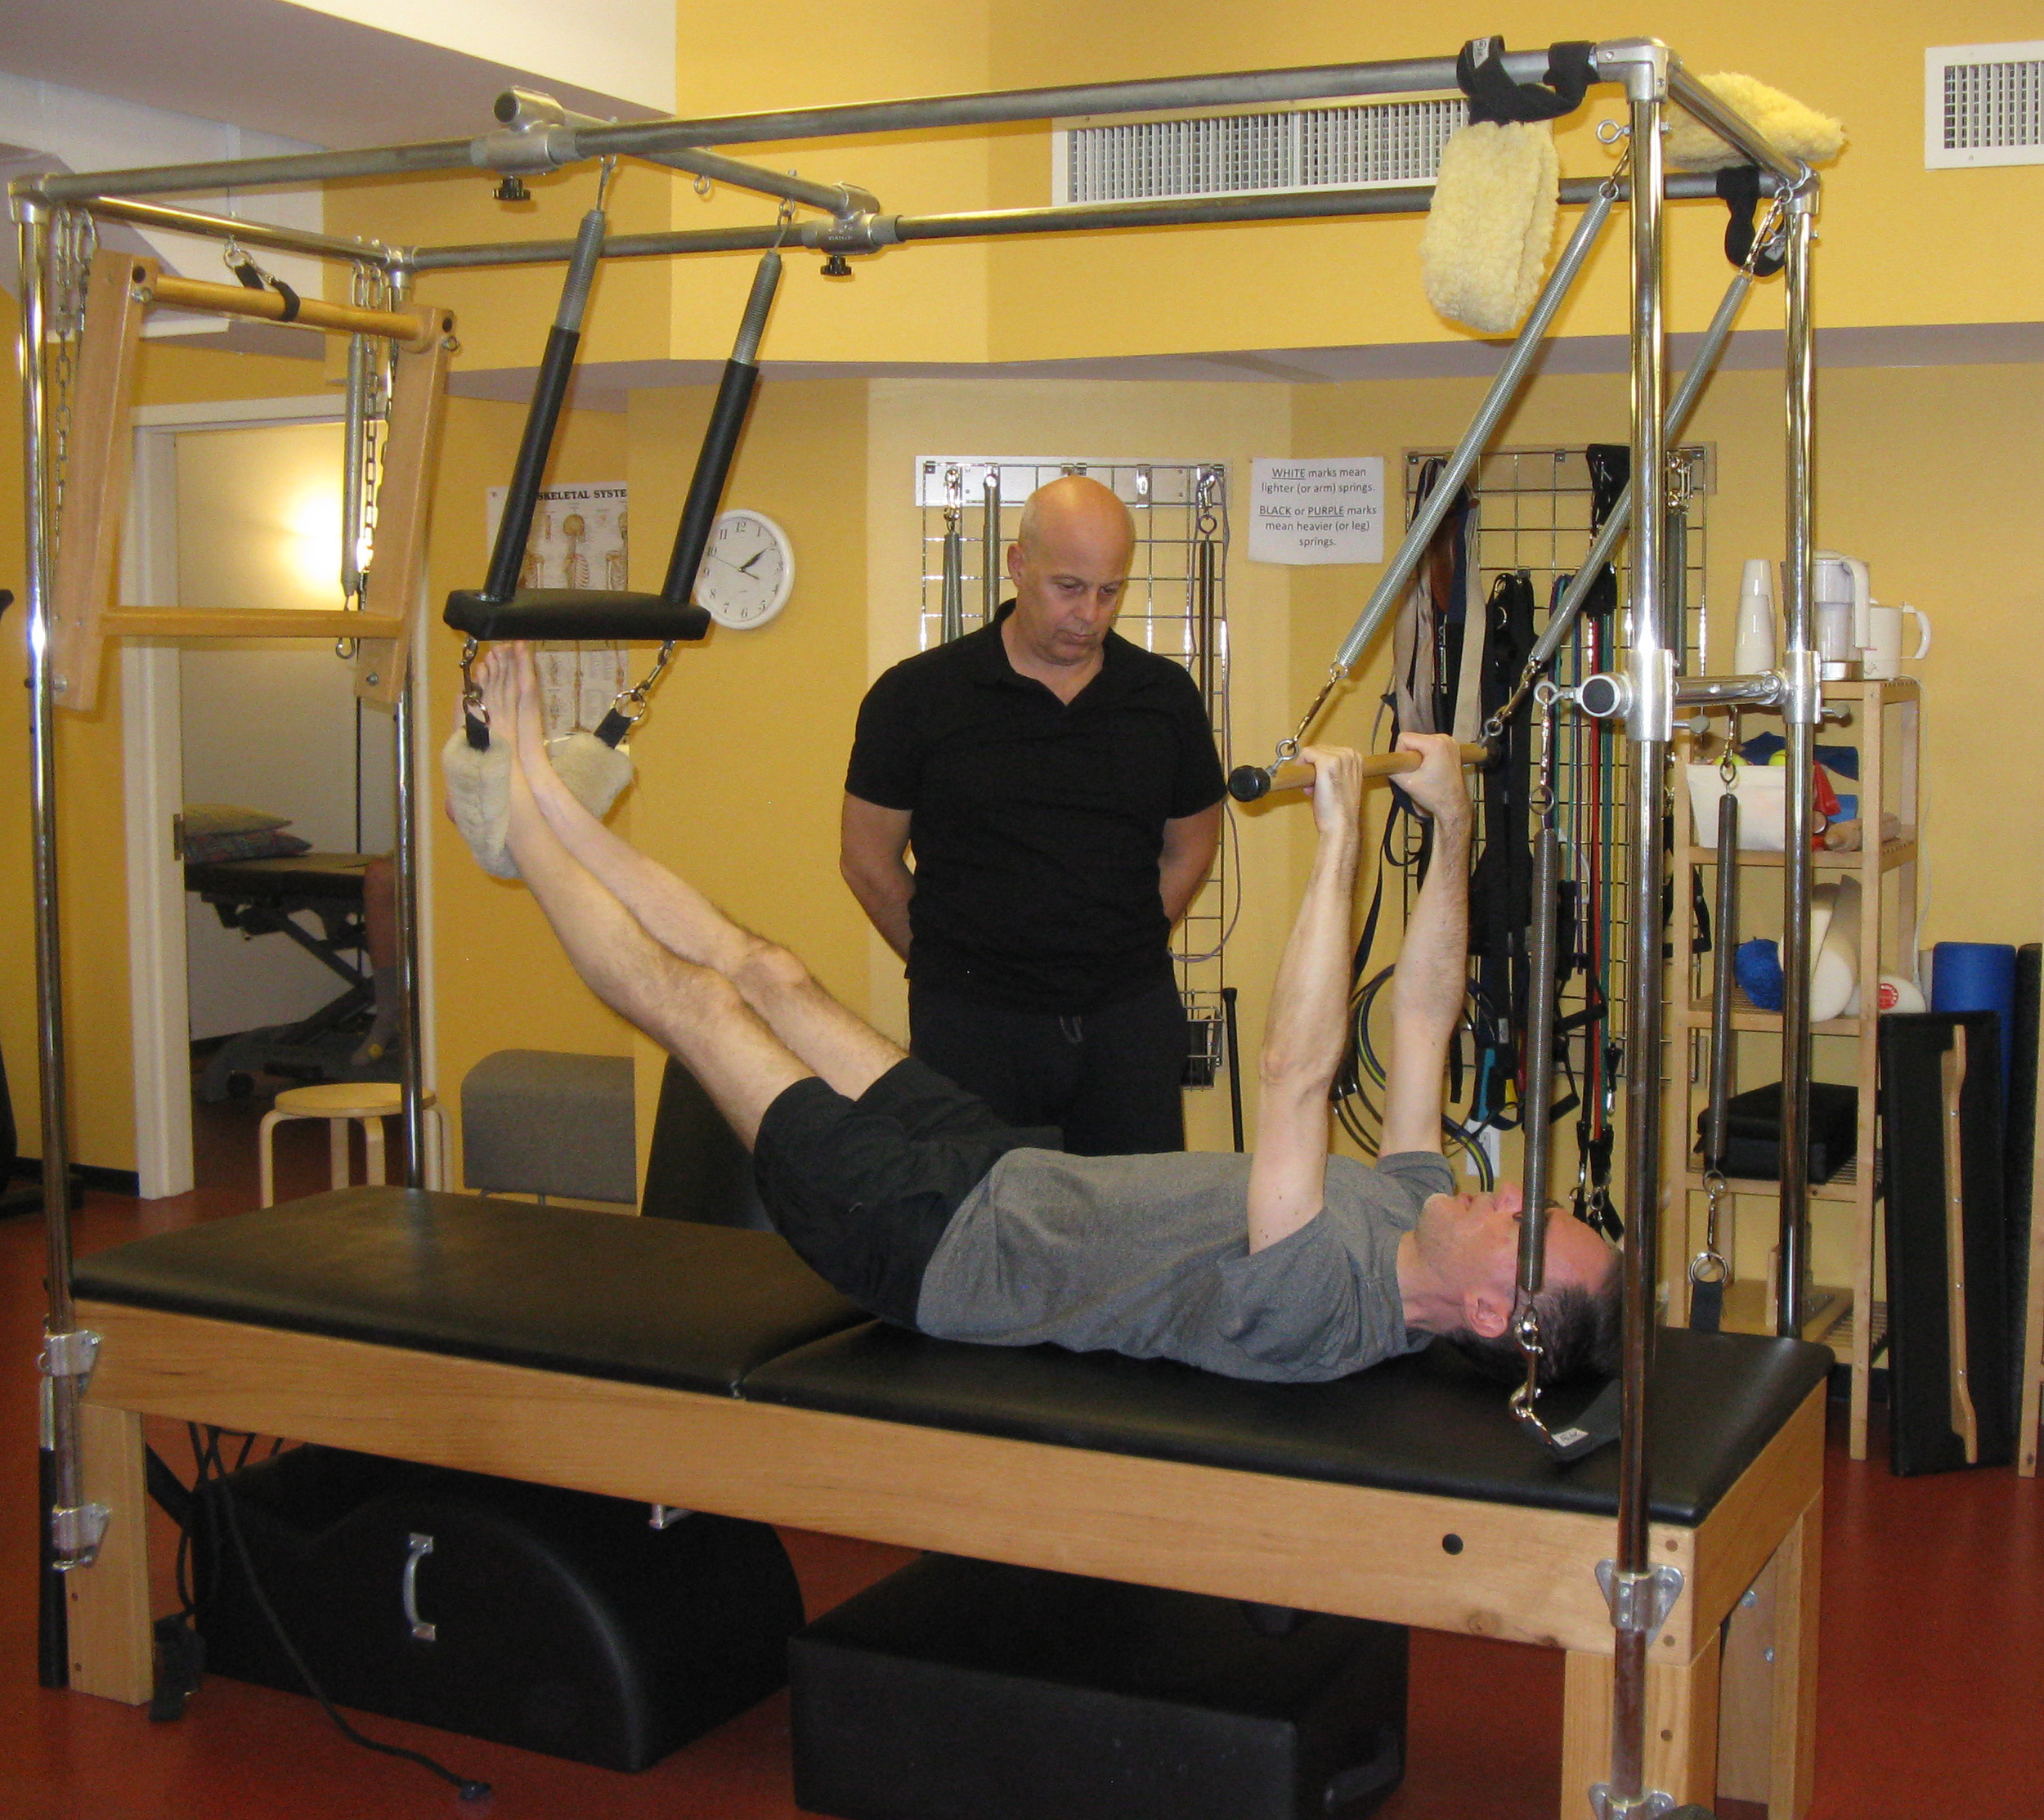 Getting started on the pilates machines